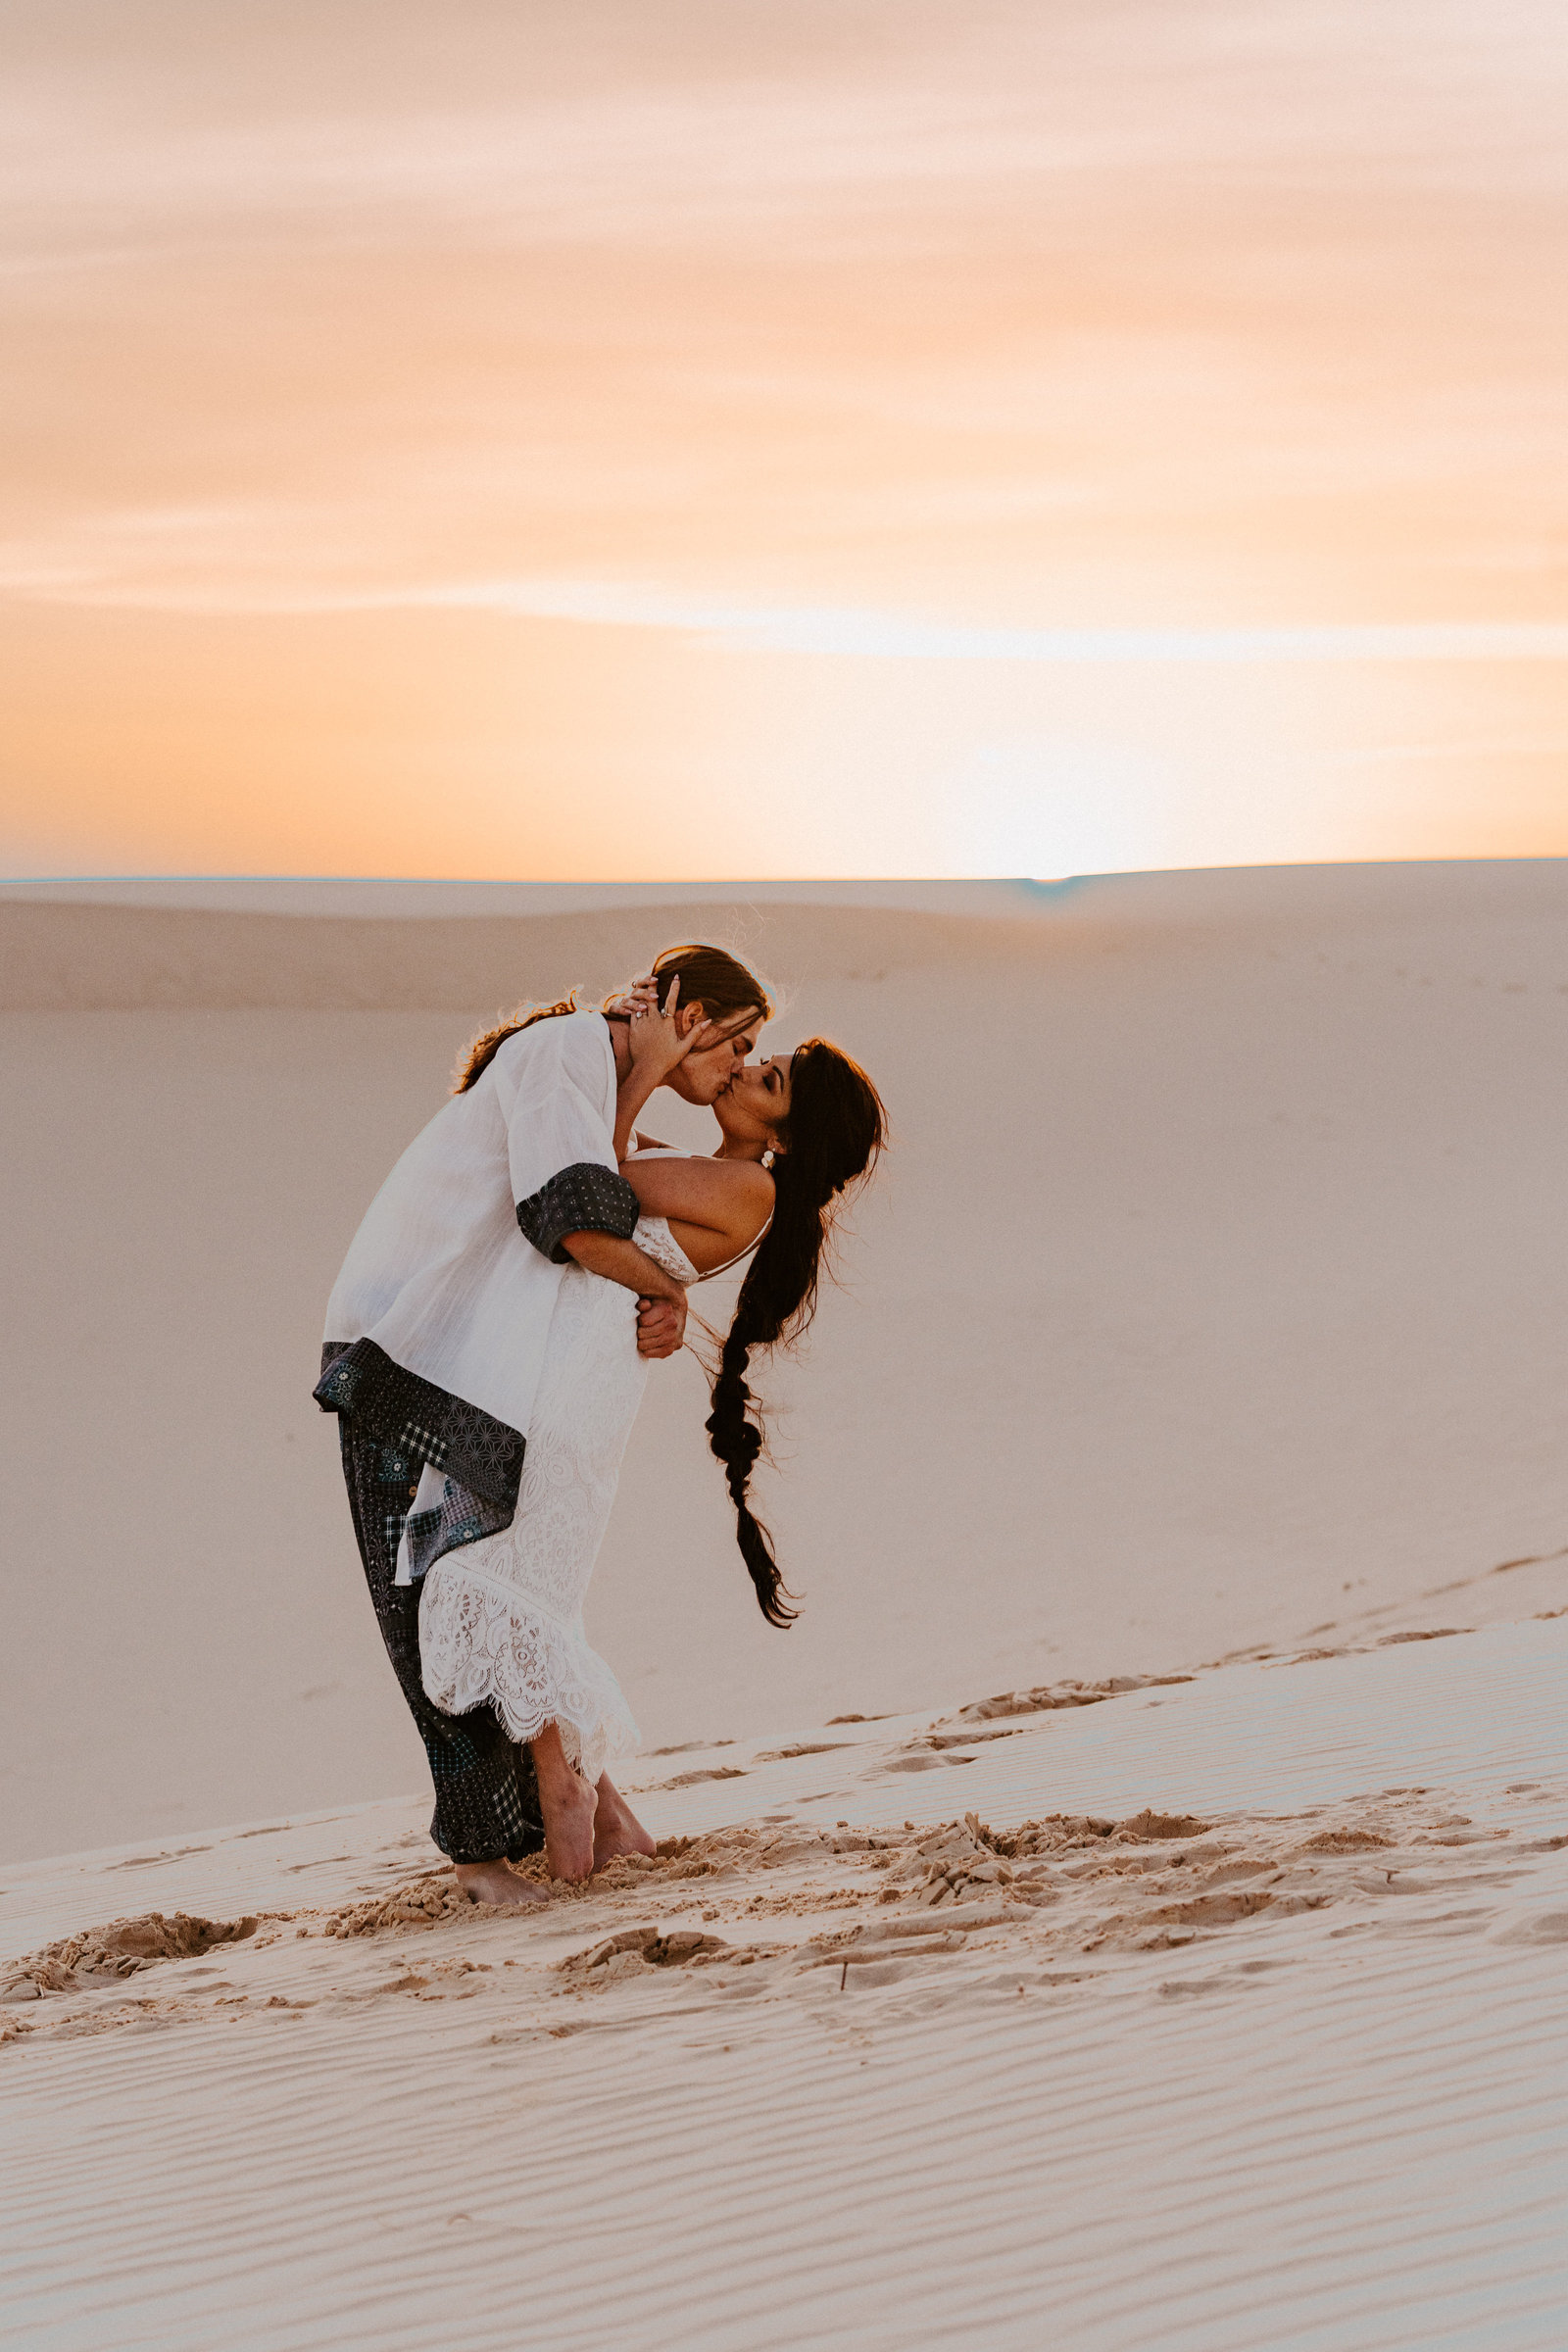 morocco-desert-elopement-adventurous-sand-dunes-monahans-sydney-and-ryan-photography-31